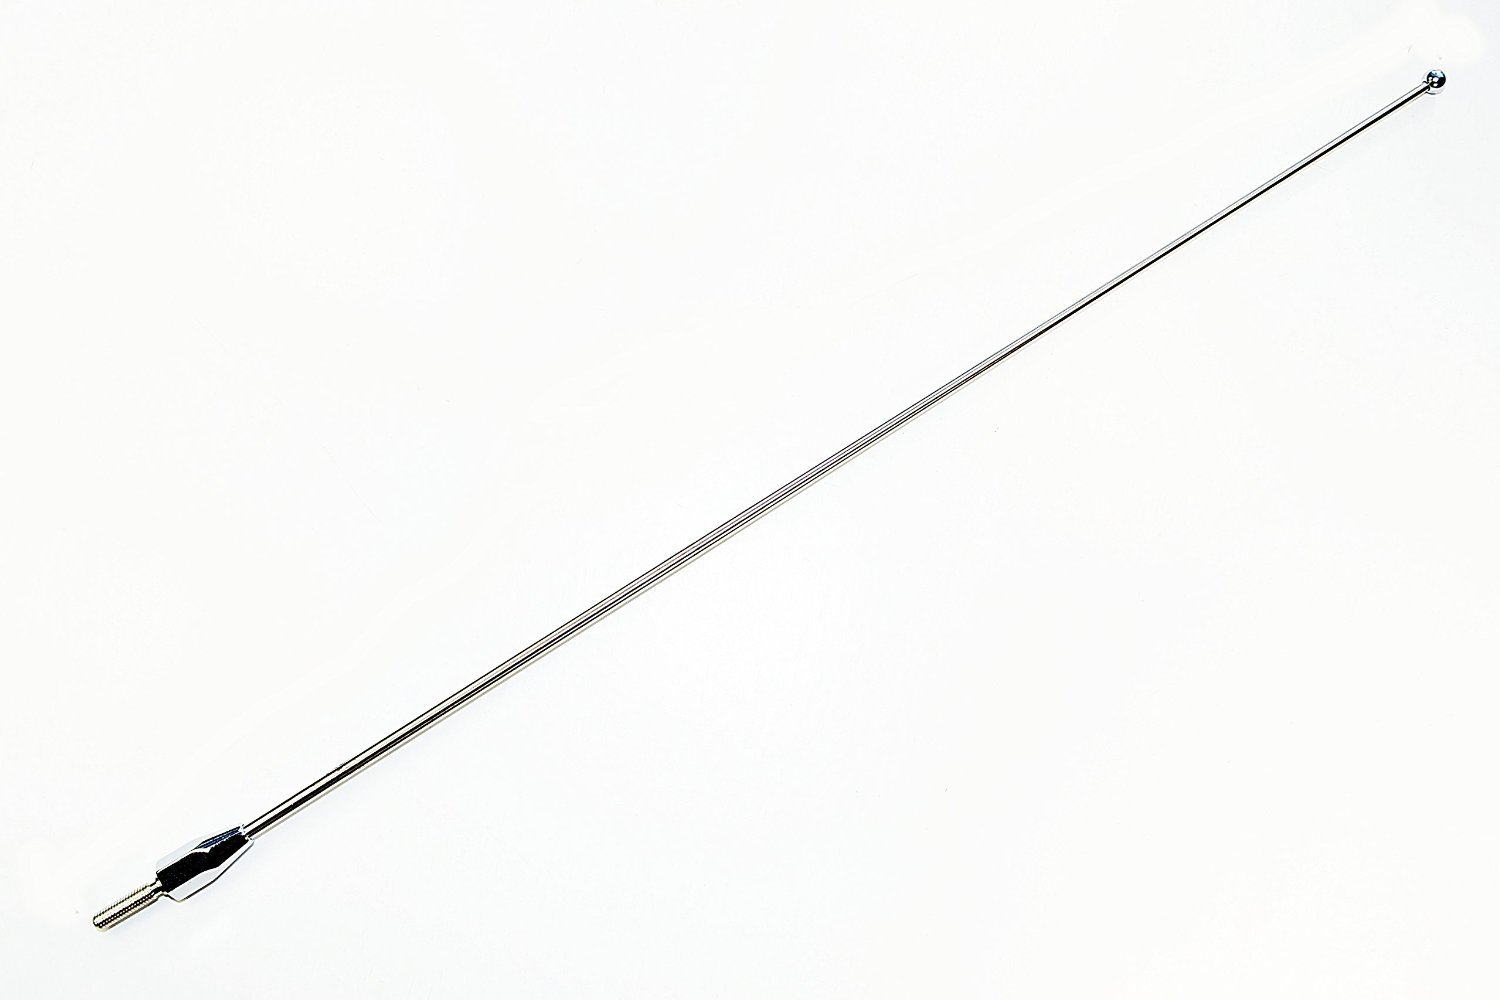 AntennaMastsRus - Made In USA - 4' GREEN Aluminum Antenna is Compatible with Dodge Ram Truck 2500 (1999-2009)